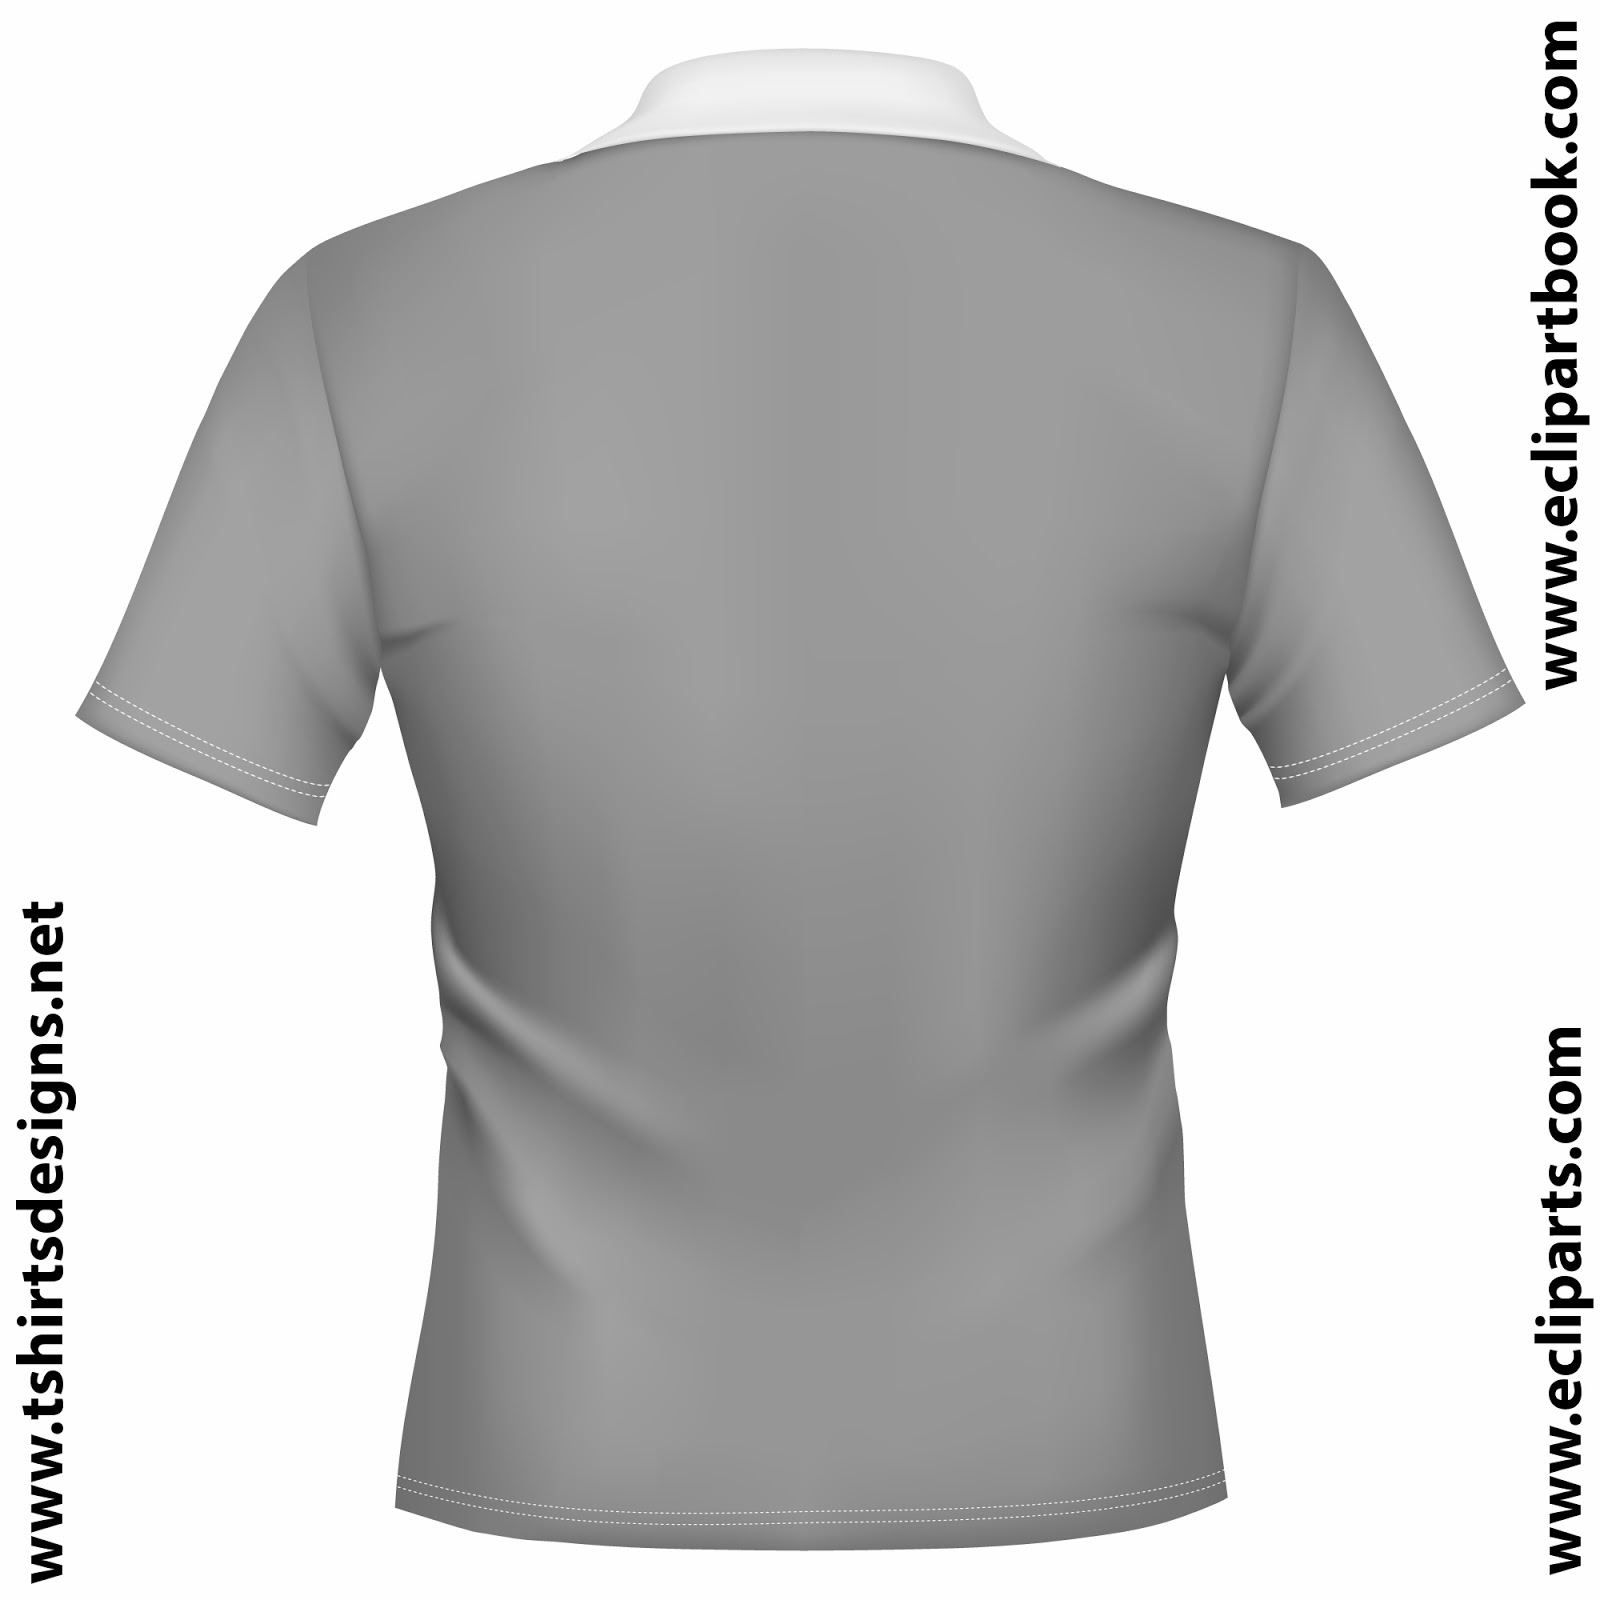 The Gallery For Collar T Shirt Template